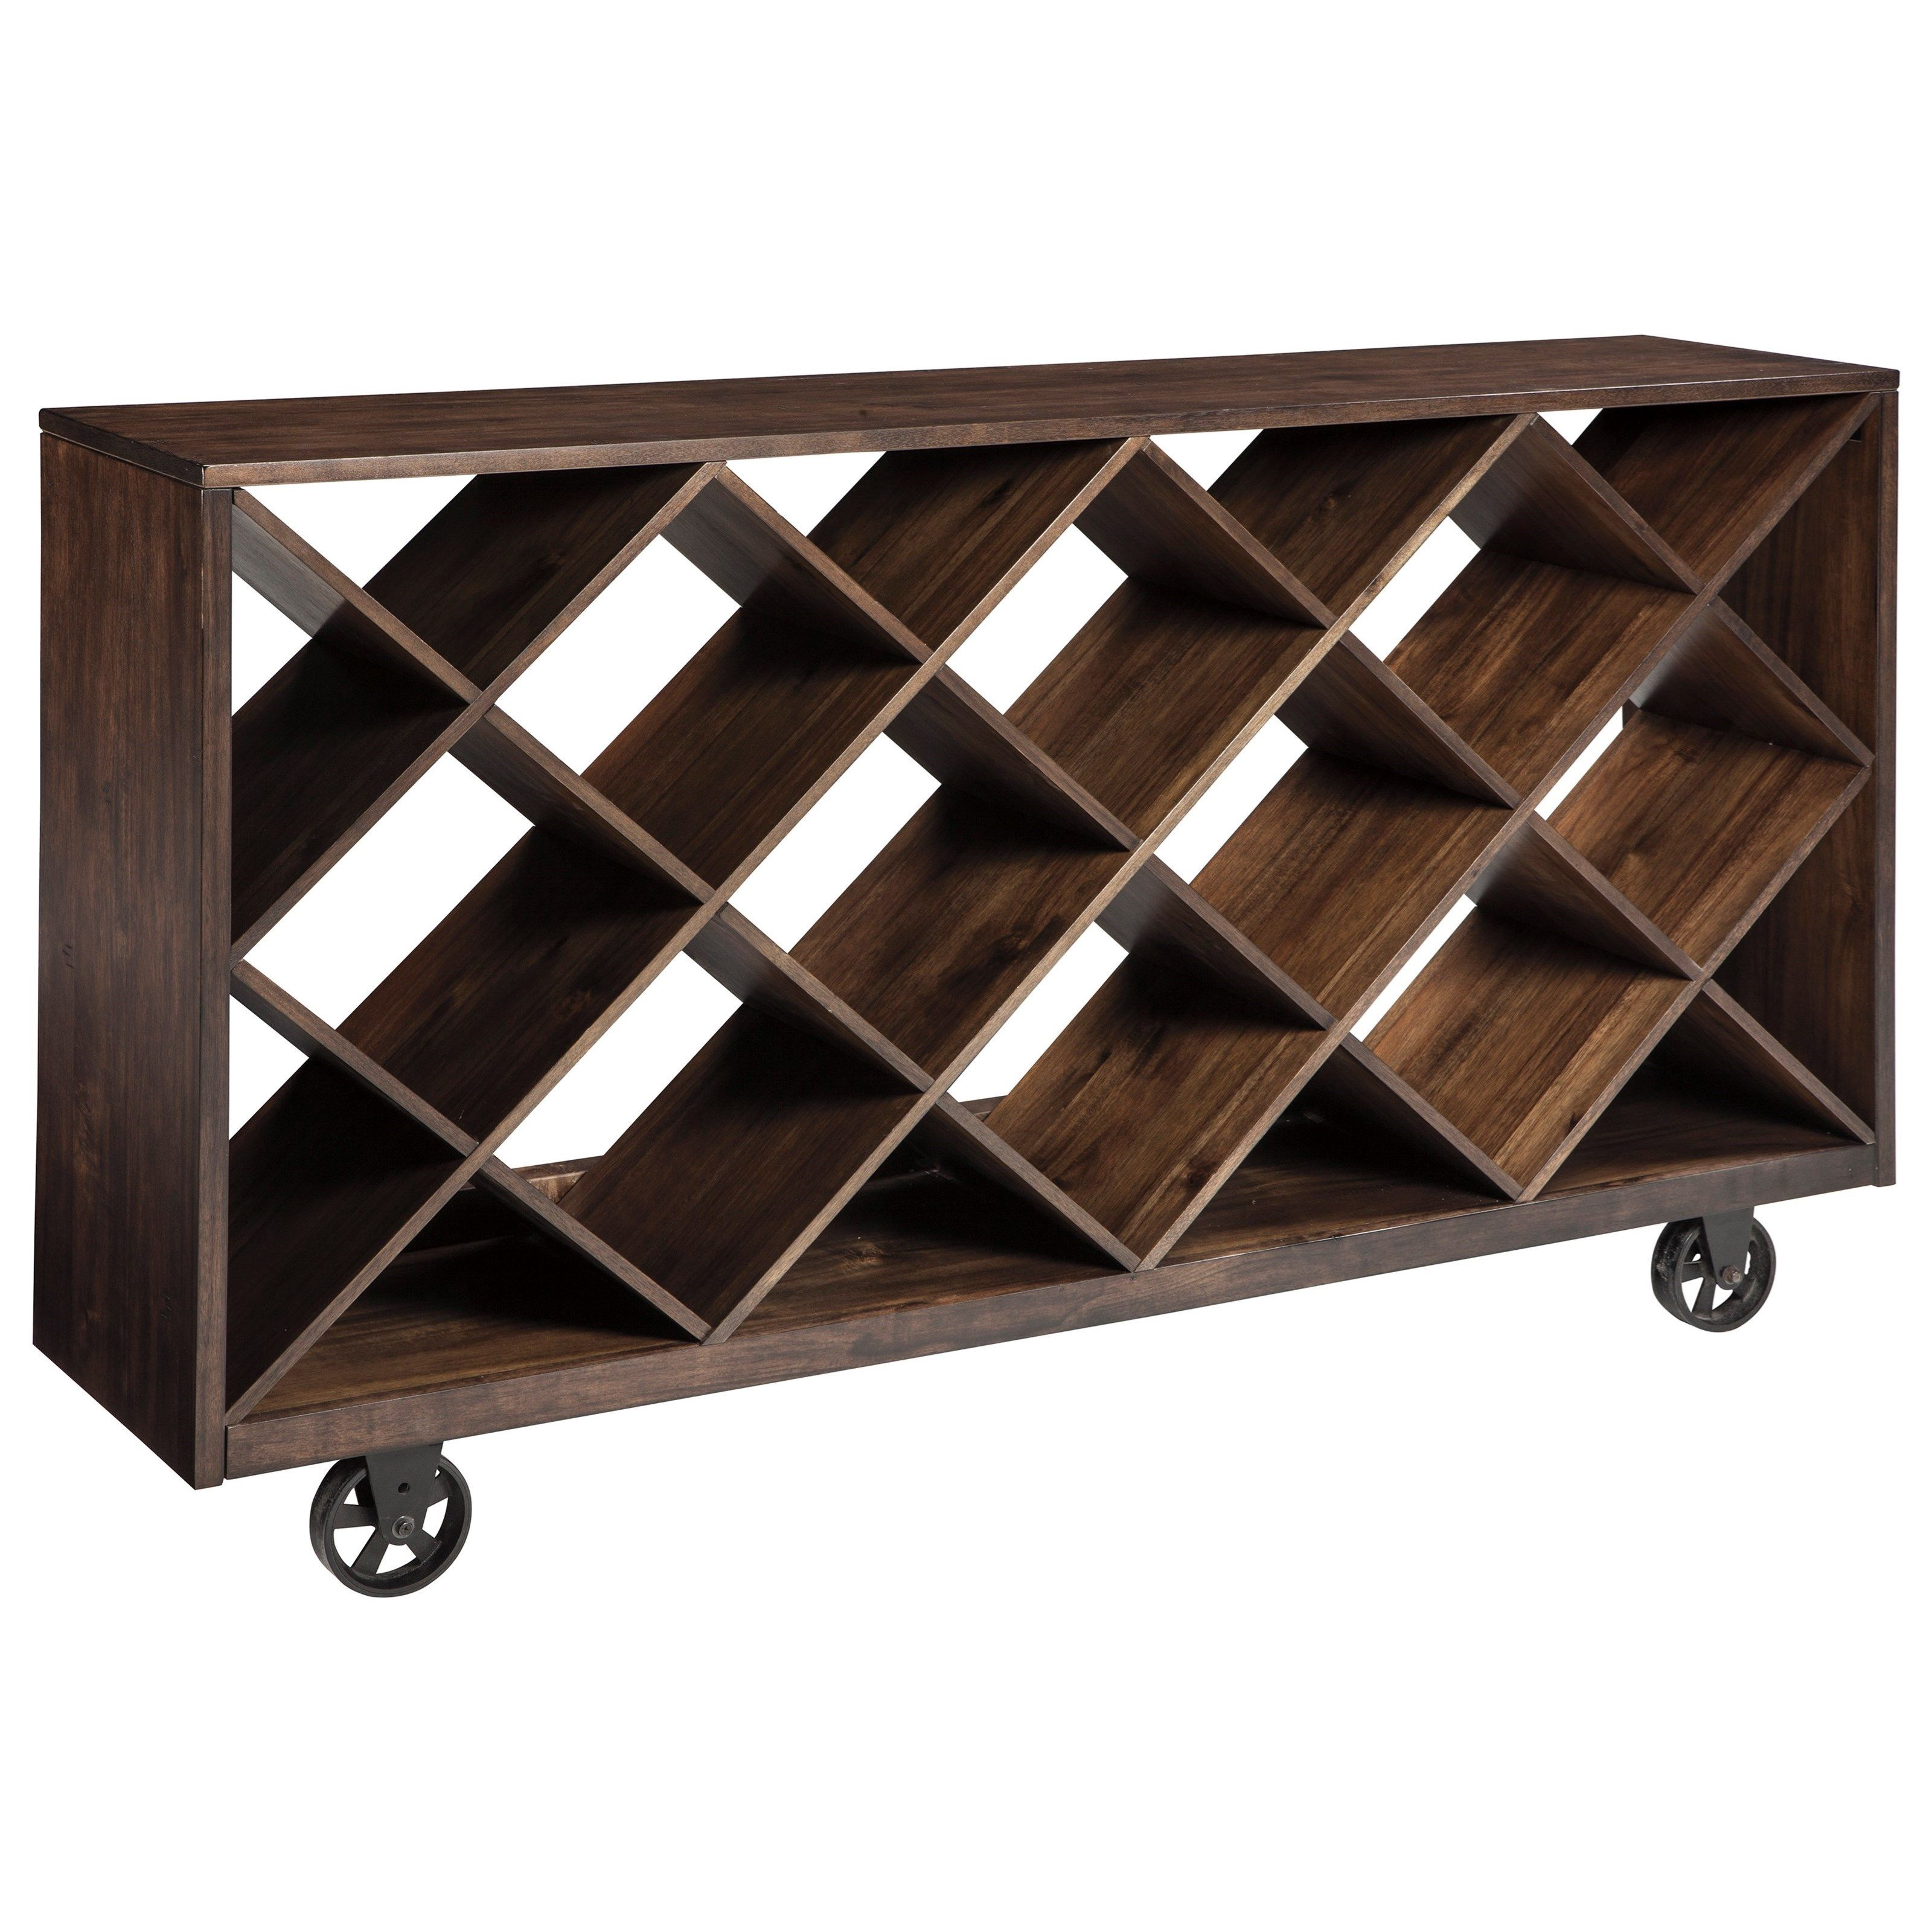 Starmore Shelf/Console Table Get Creative With Storage And Display Space  With This Bookshelf/